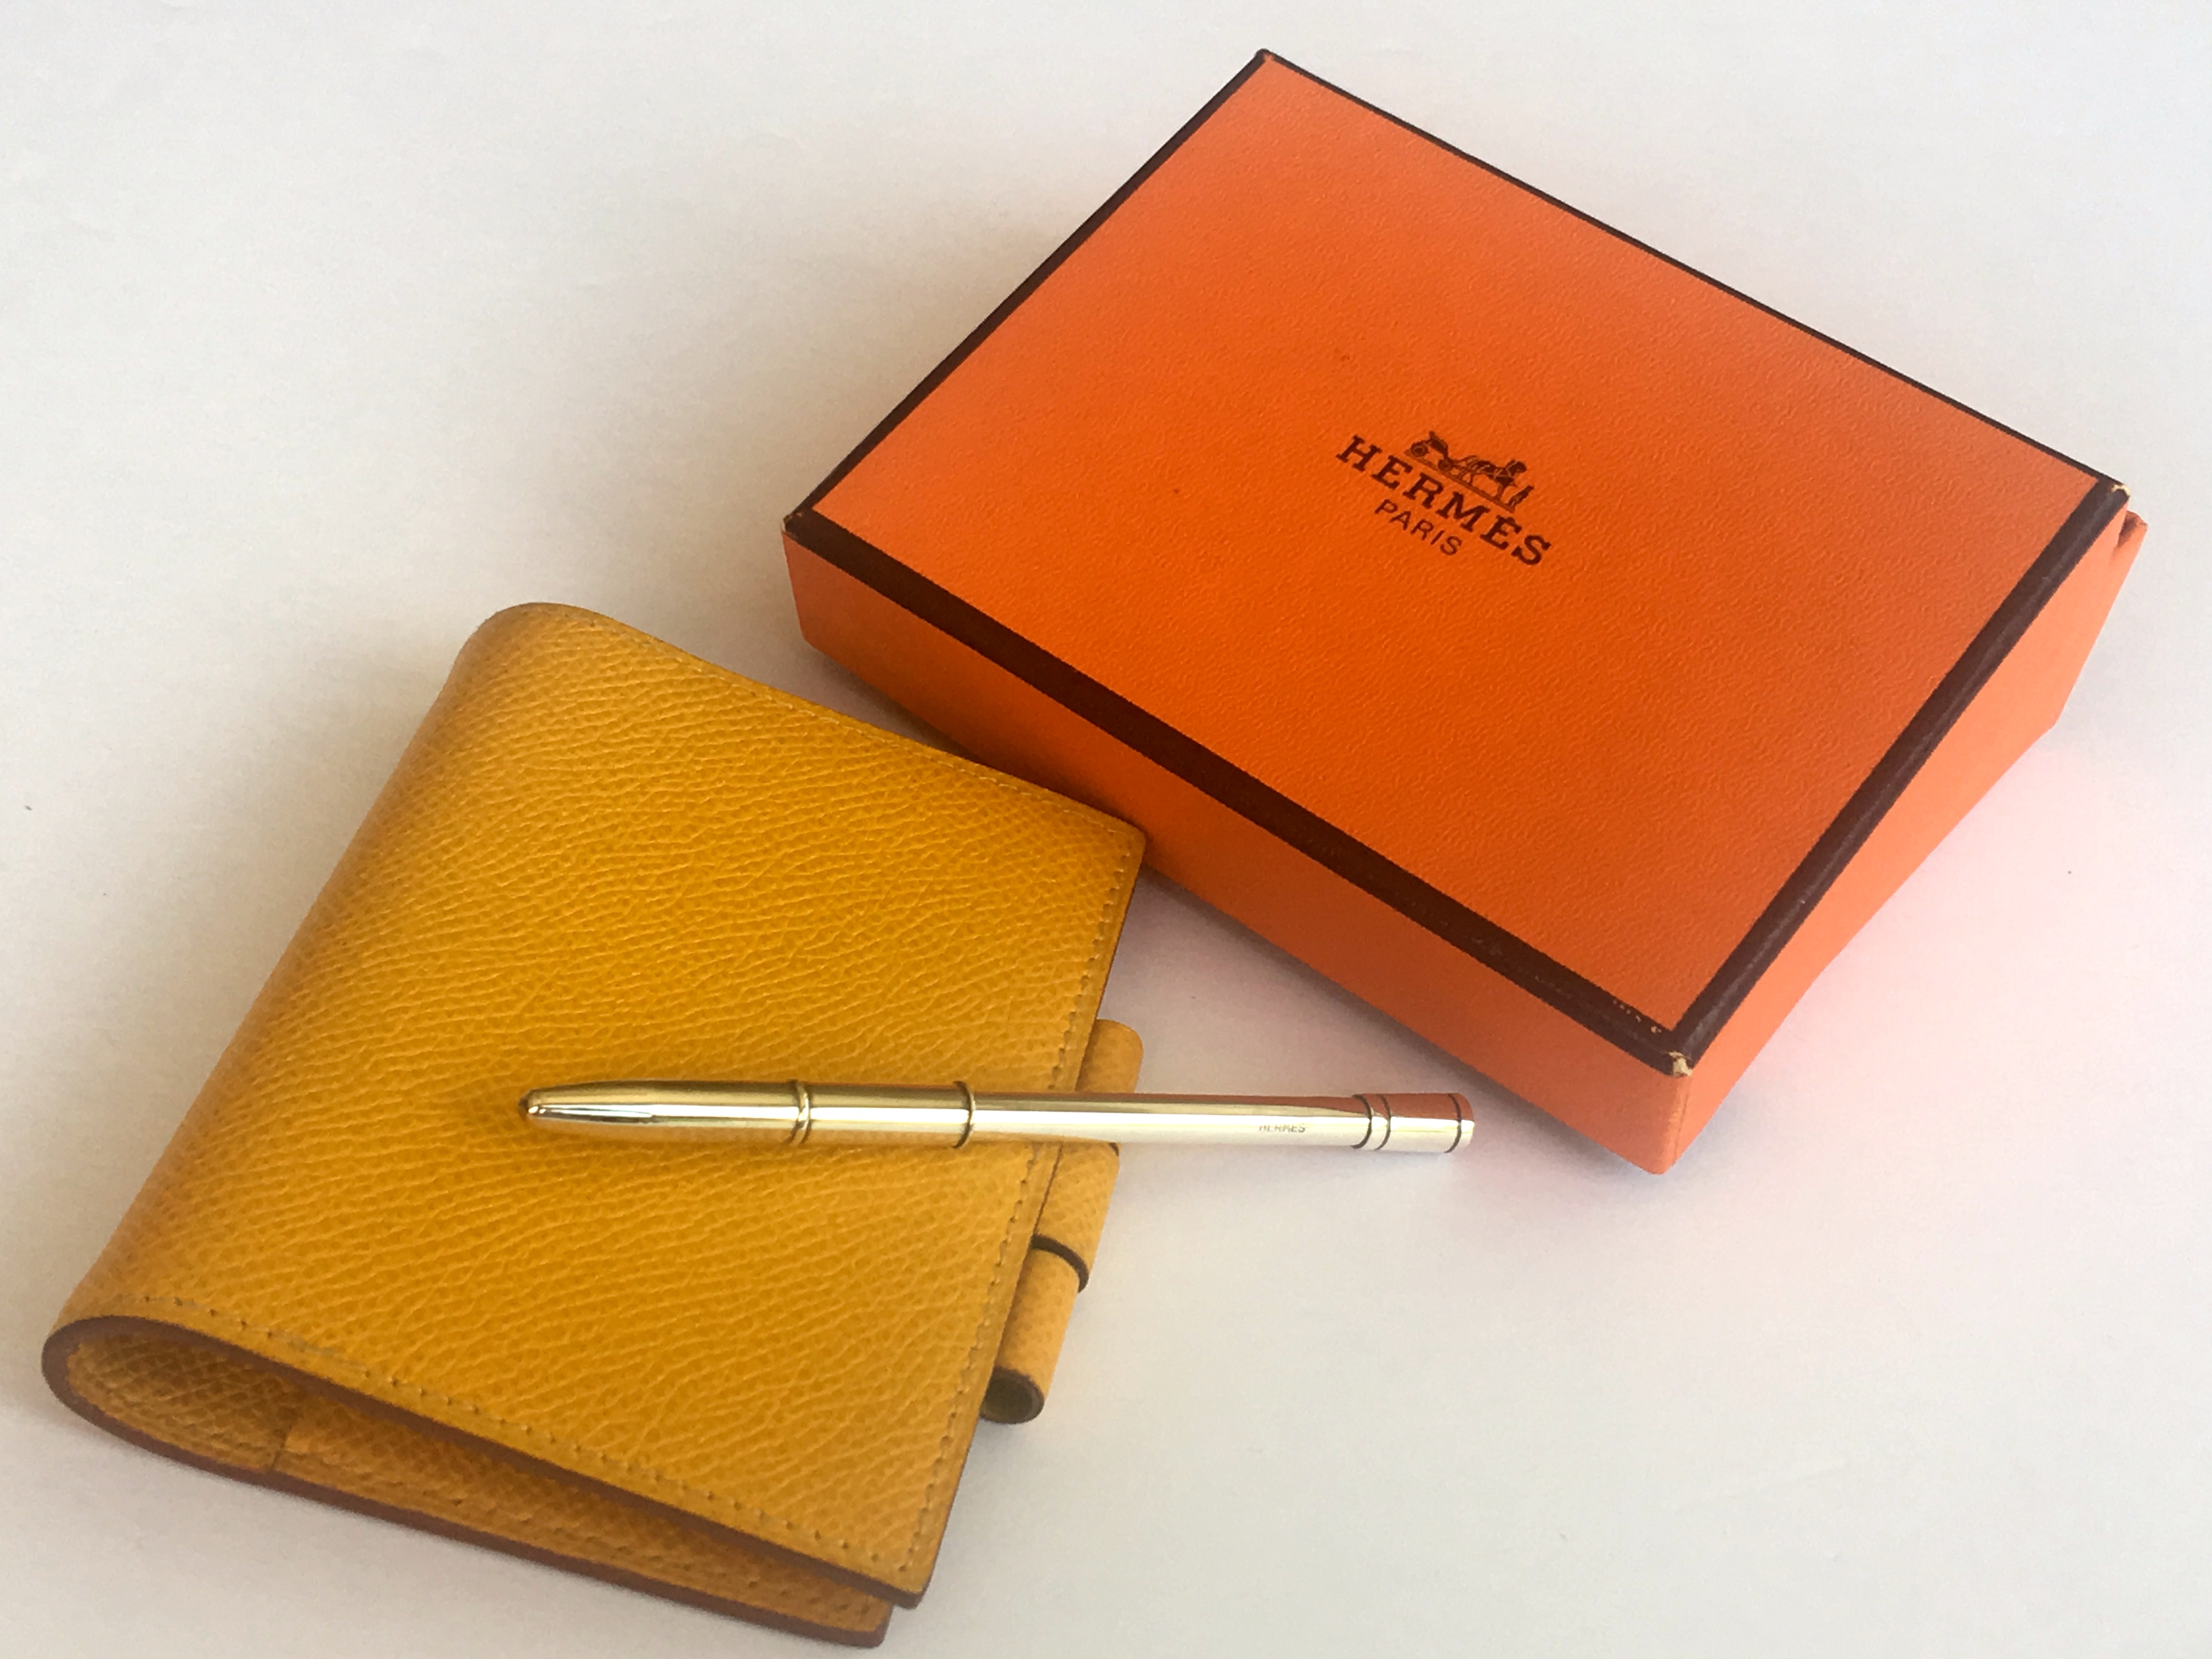 Hermes Agenda Cover Vision Pm Mini With 925 Serling Silver